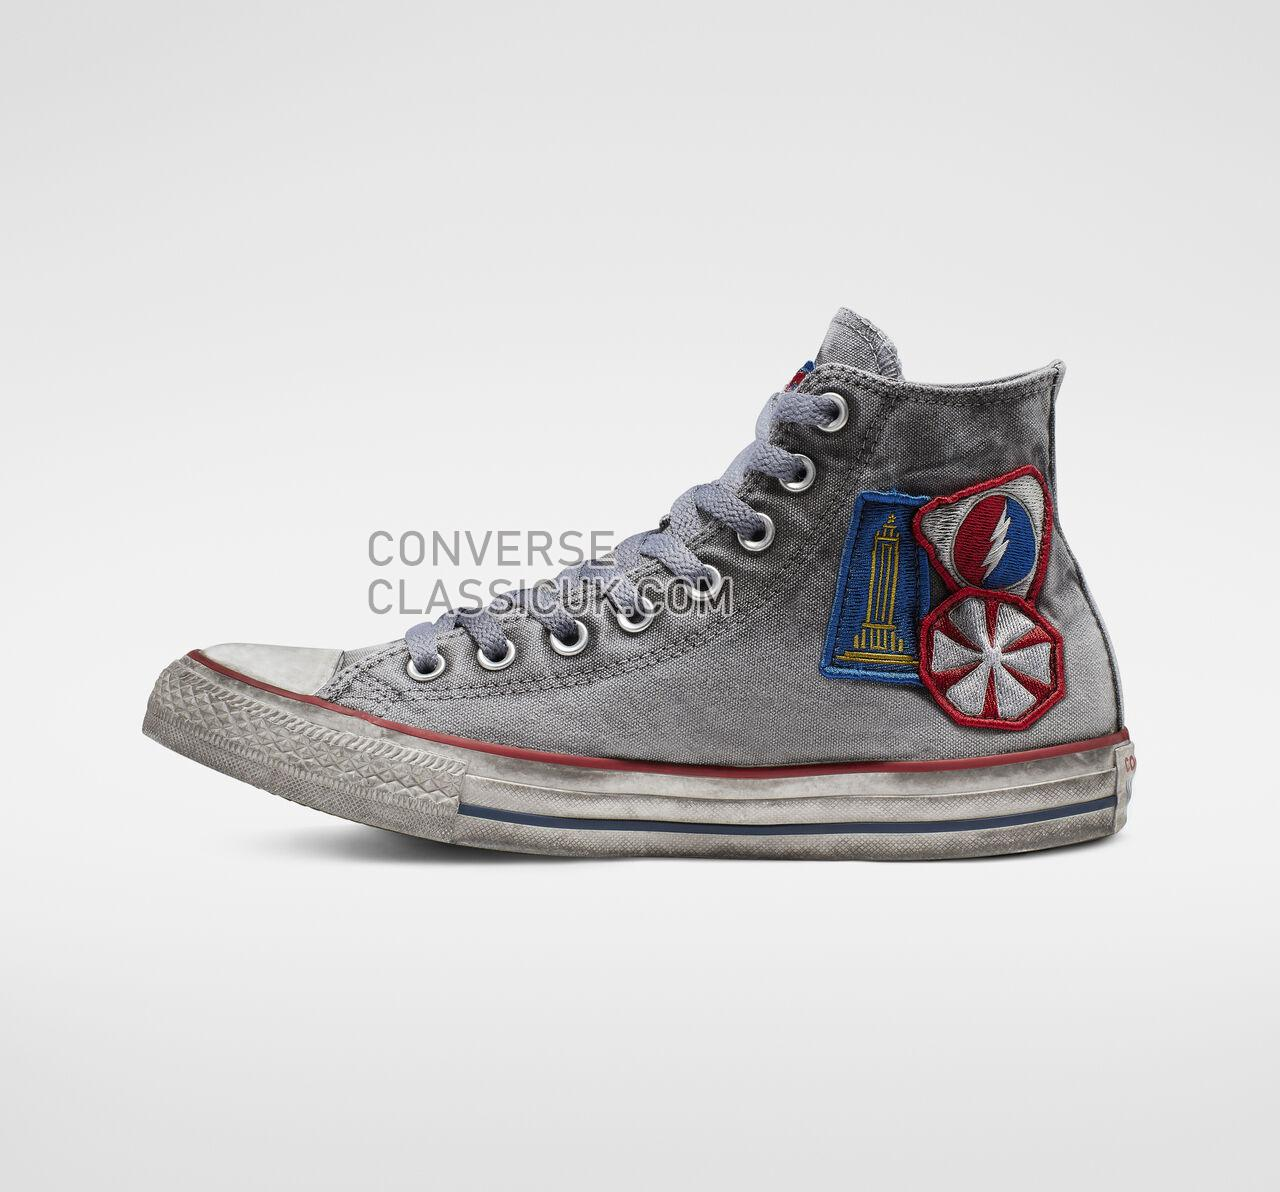 Converse Chuck Taylor All Star Patchwork Smoke High Top Mens Womens Unisex 162900C White/Patchwork Smoke In Shoes